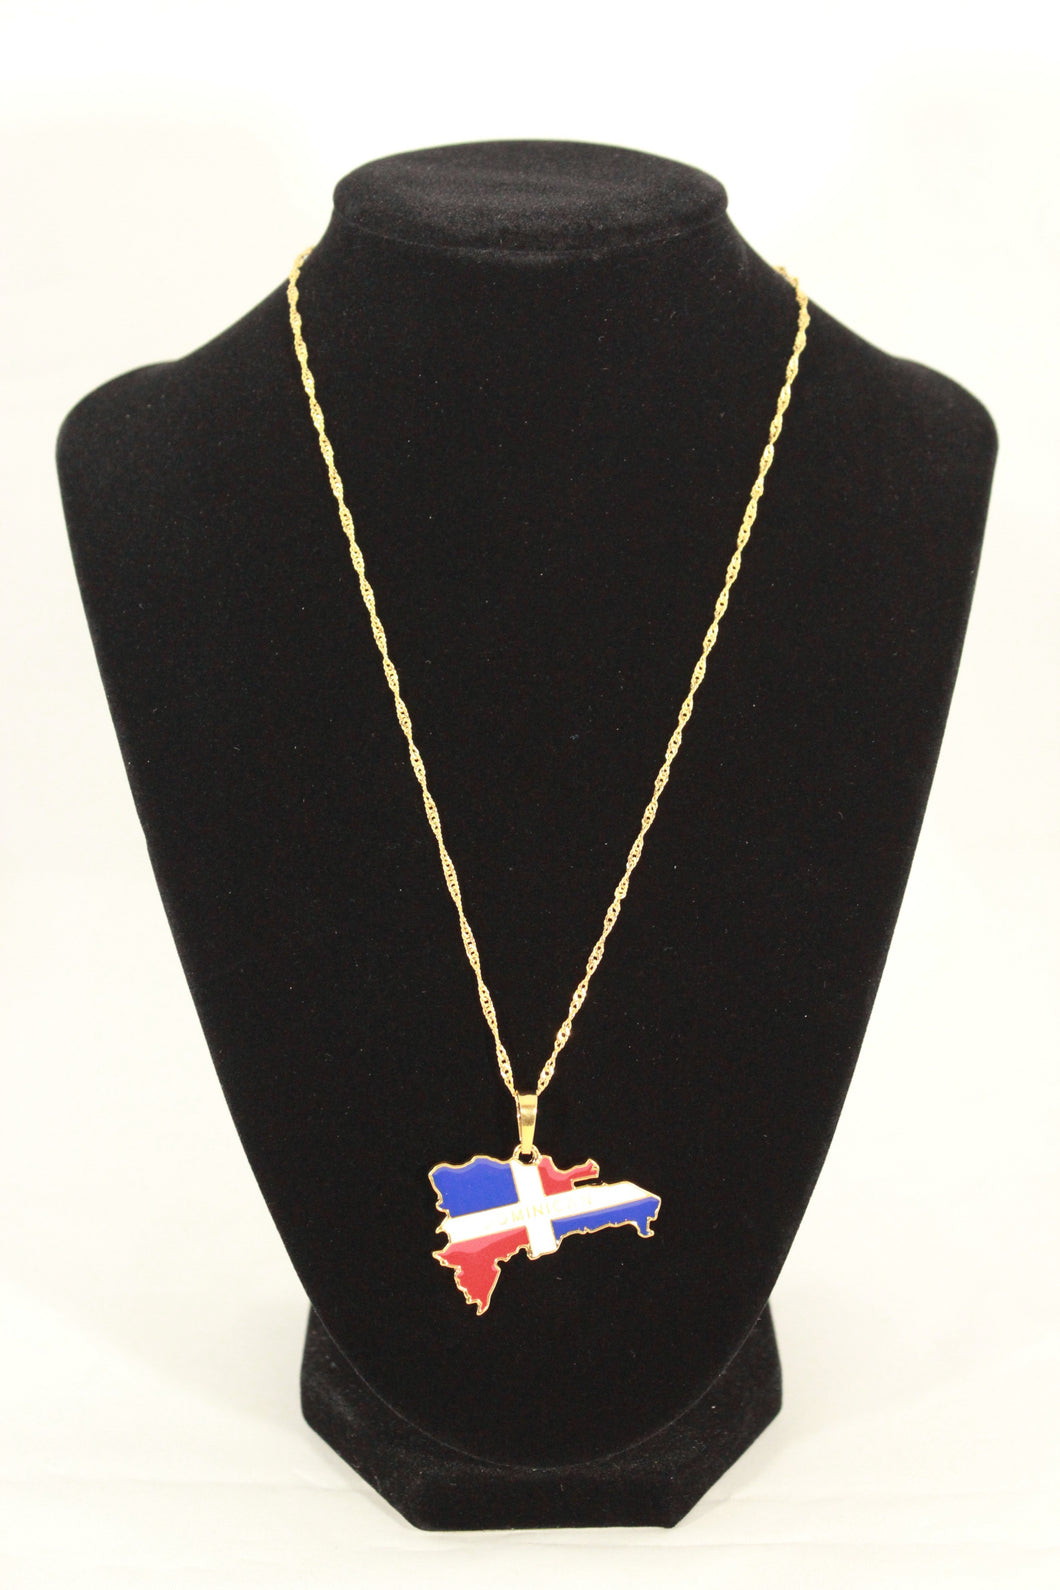 DOMINICAN REPUBLIC MAP PENDANT